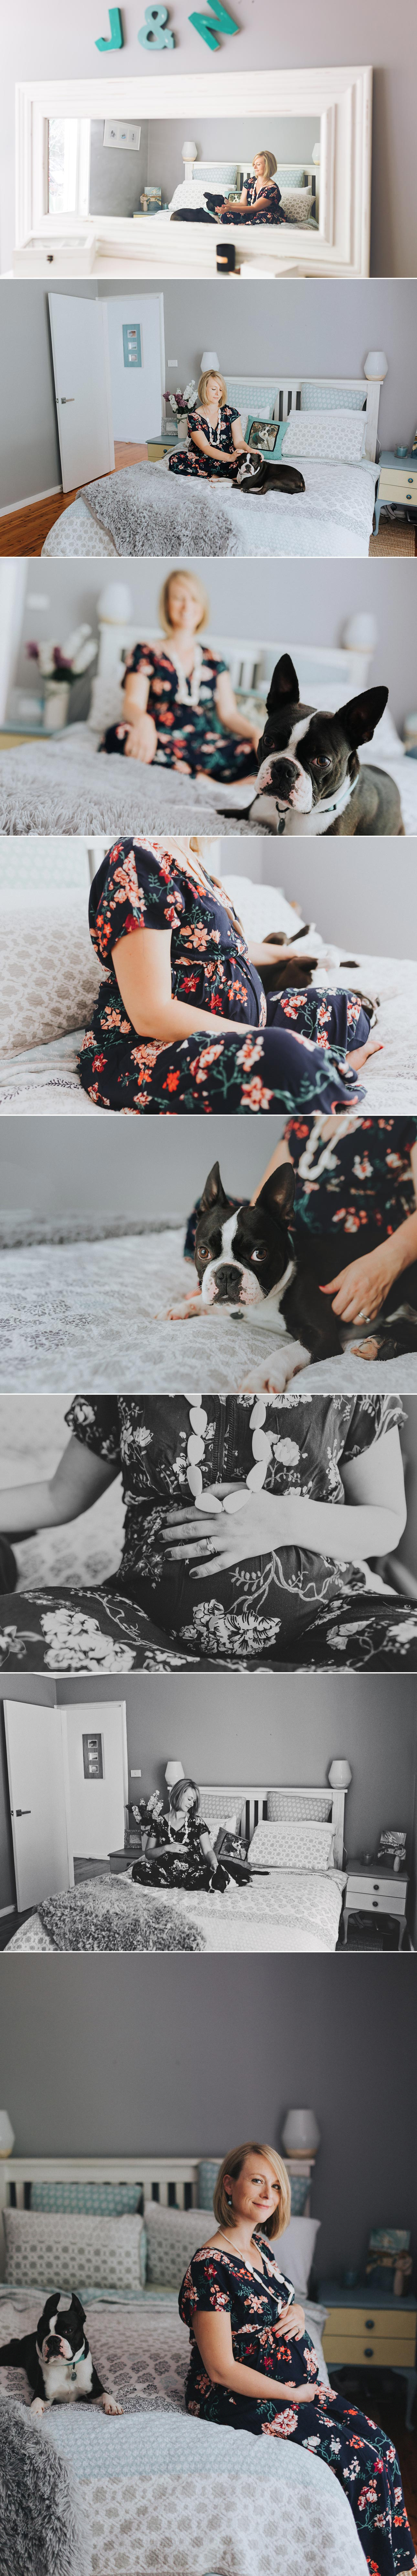 Intimate-in-home-maternity-session3.jpg